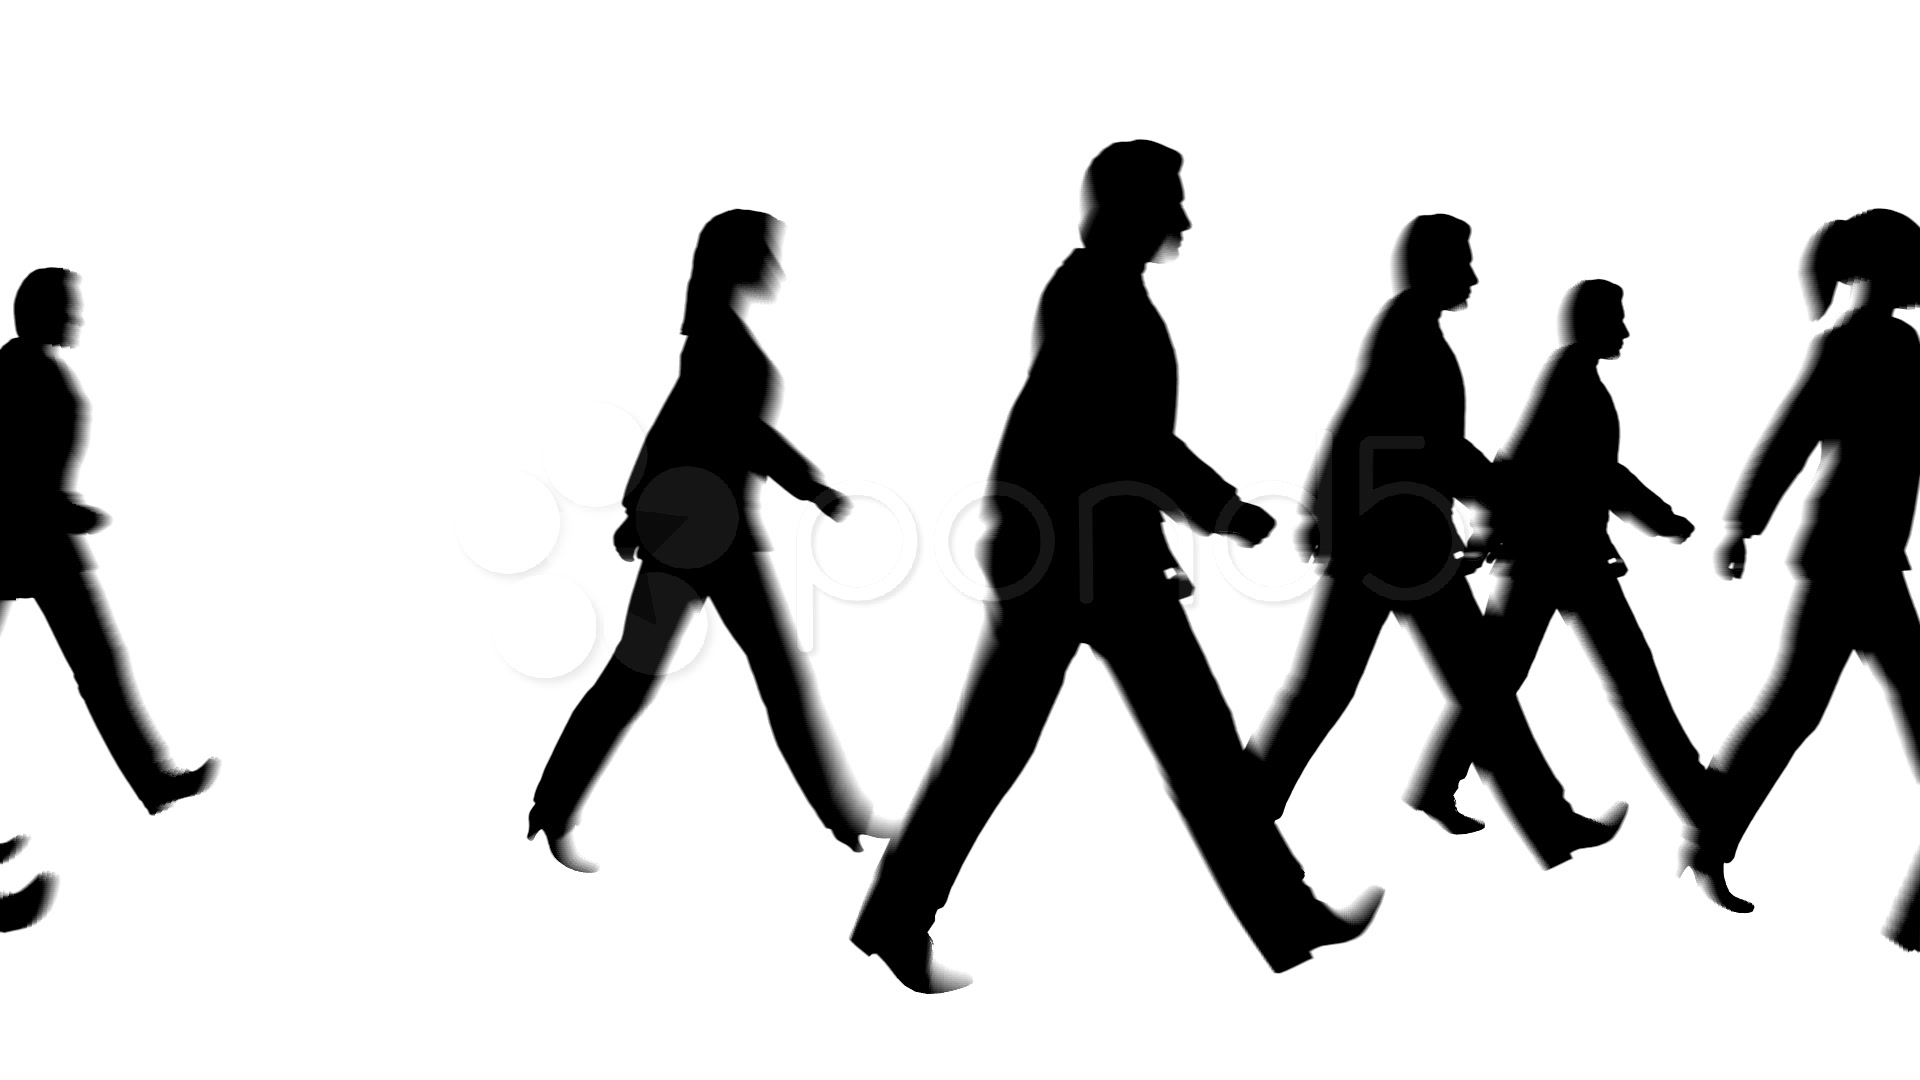 Crowd Of People Silhouette | Clipart Panda - Free Clipart Images